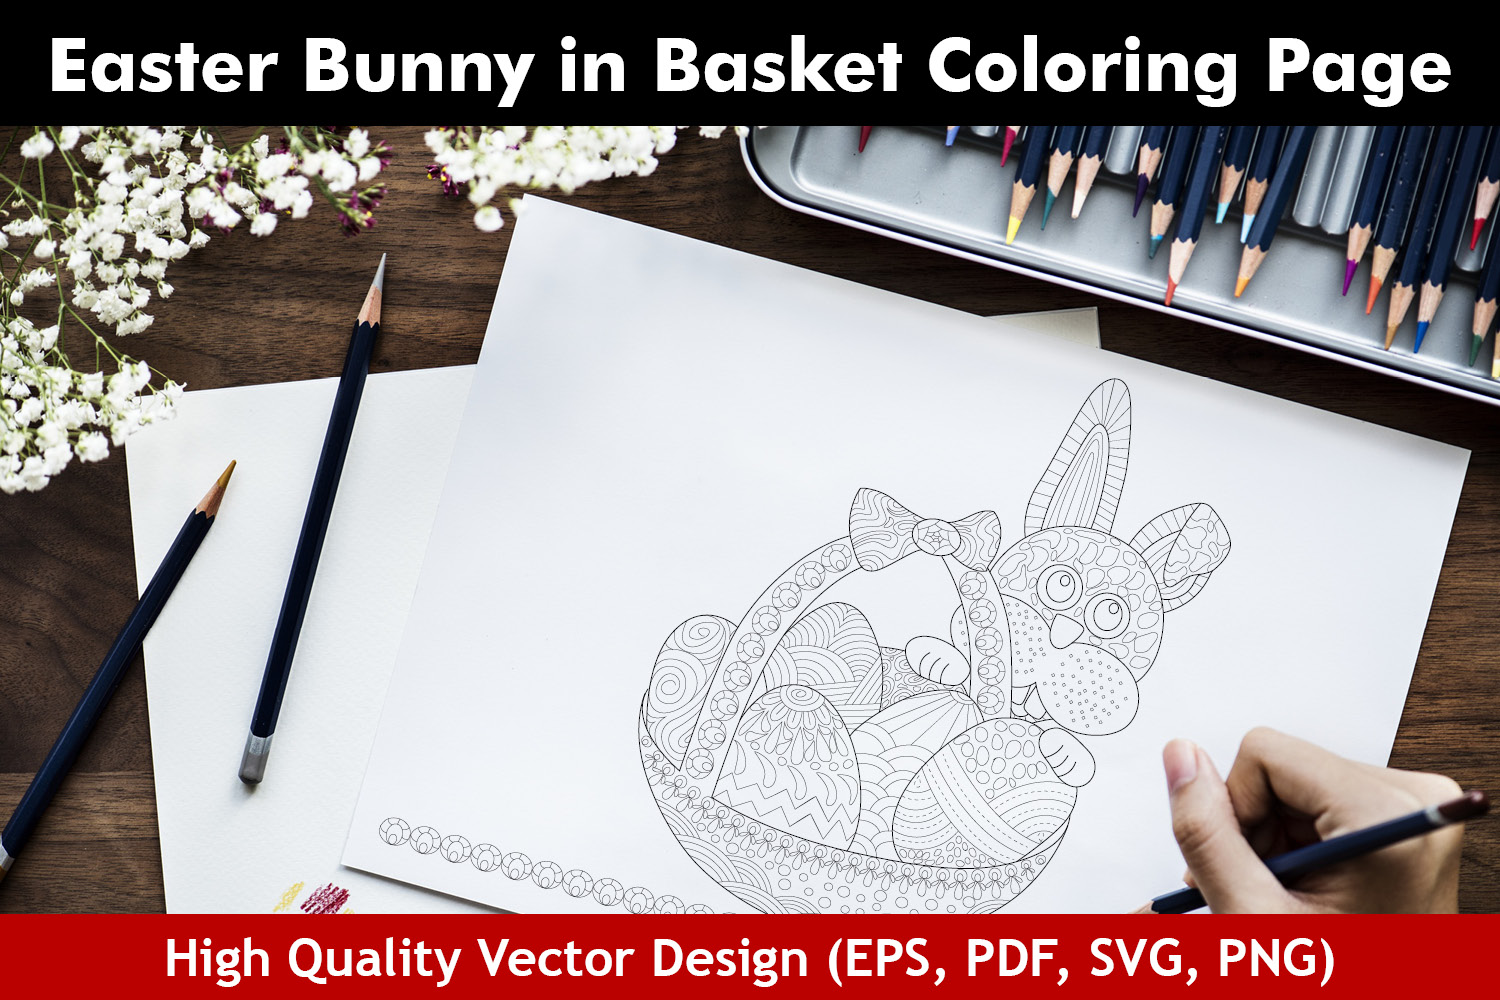 Download Free Easter Bunny In Basket Coloring Page Graphic By Coloringbooks101 Creative Fabrica for Cricut Explore, Silhouette and other cutting machines.